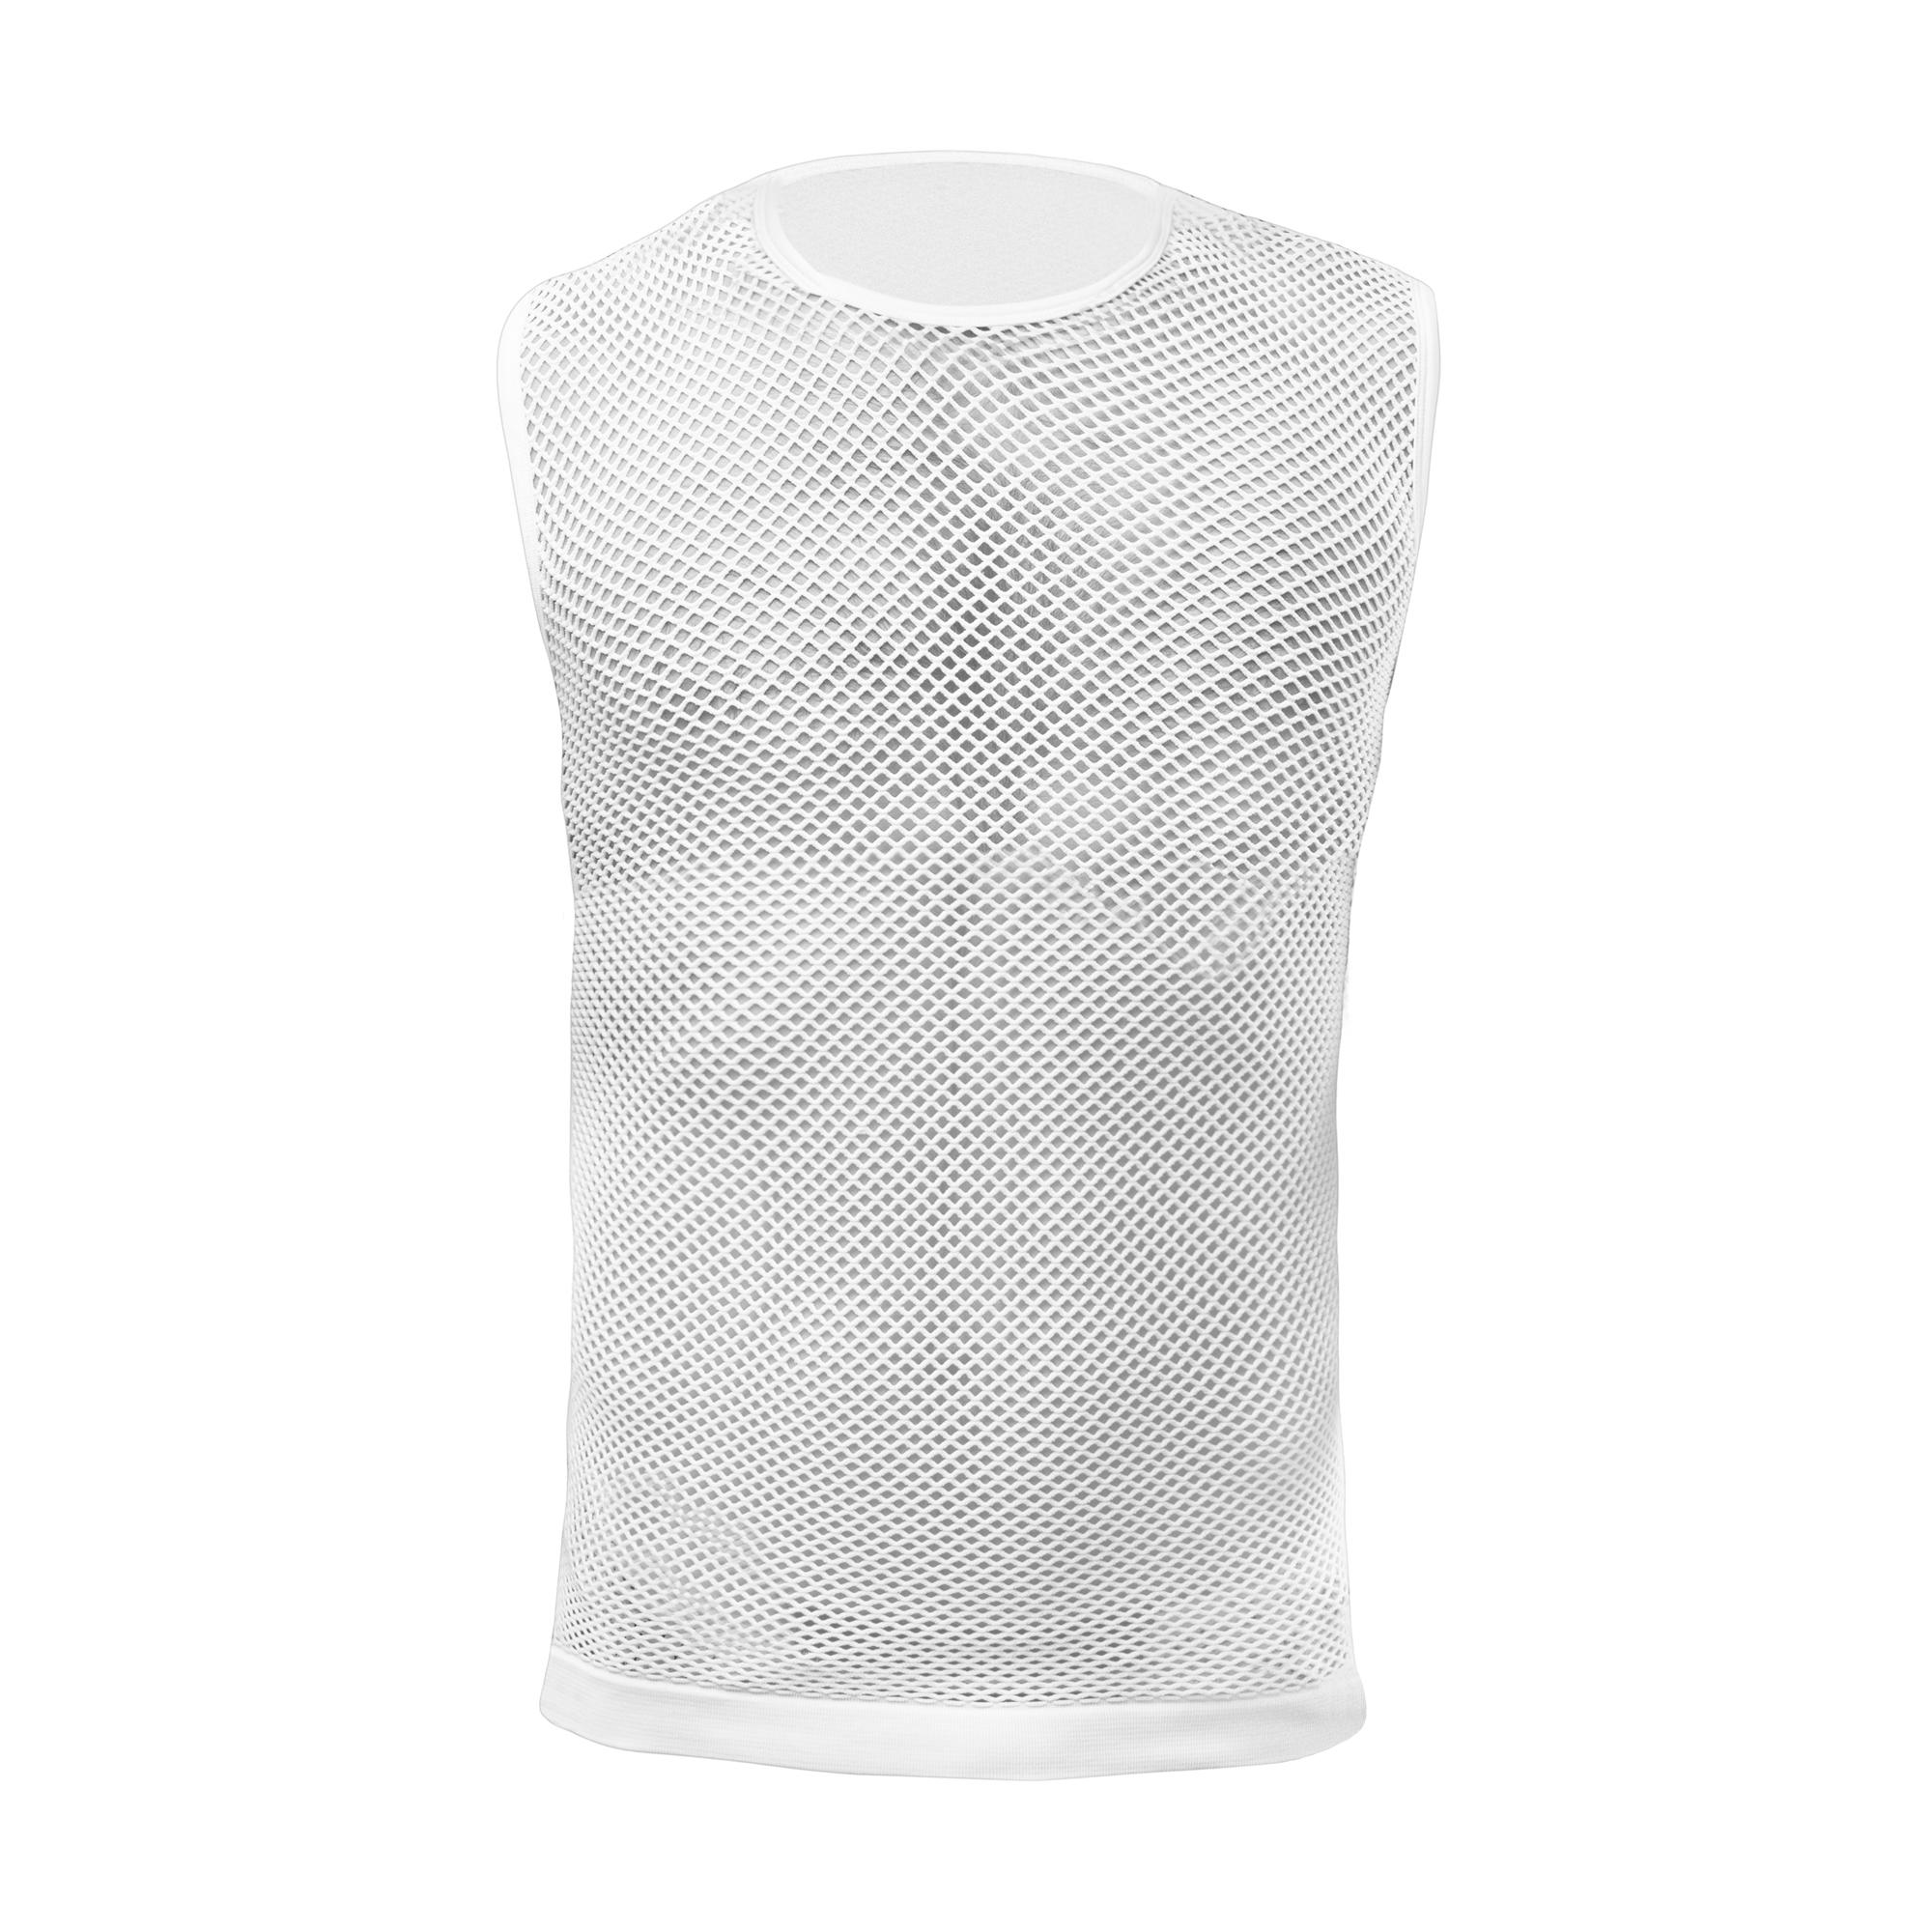 Afbeelding GripGrab Ondershirt mouwloos Unisex Wit / 3-Season Sleeveless Base Layer